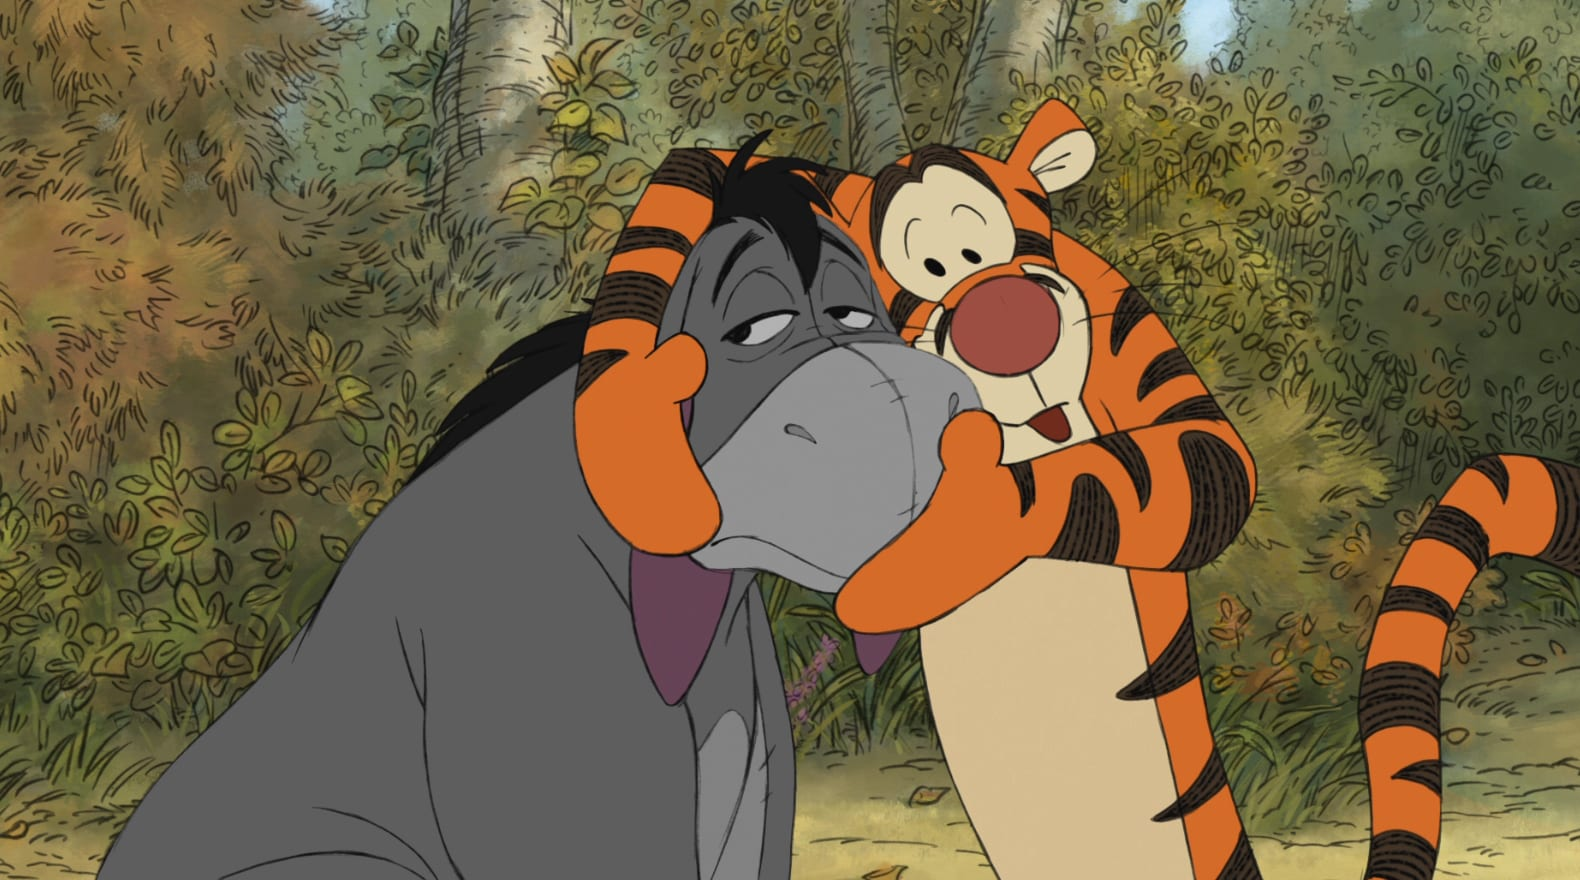 Tigger knows how to turn a frown upside down!